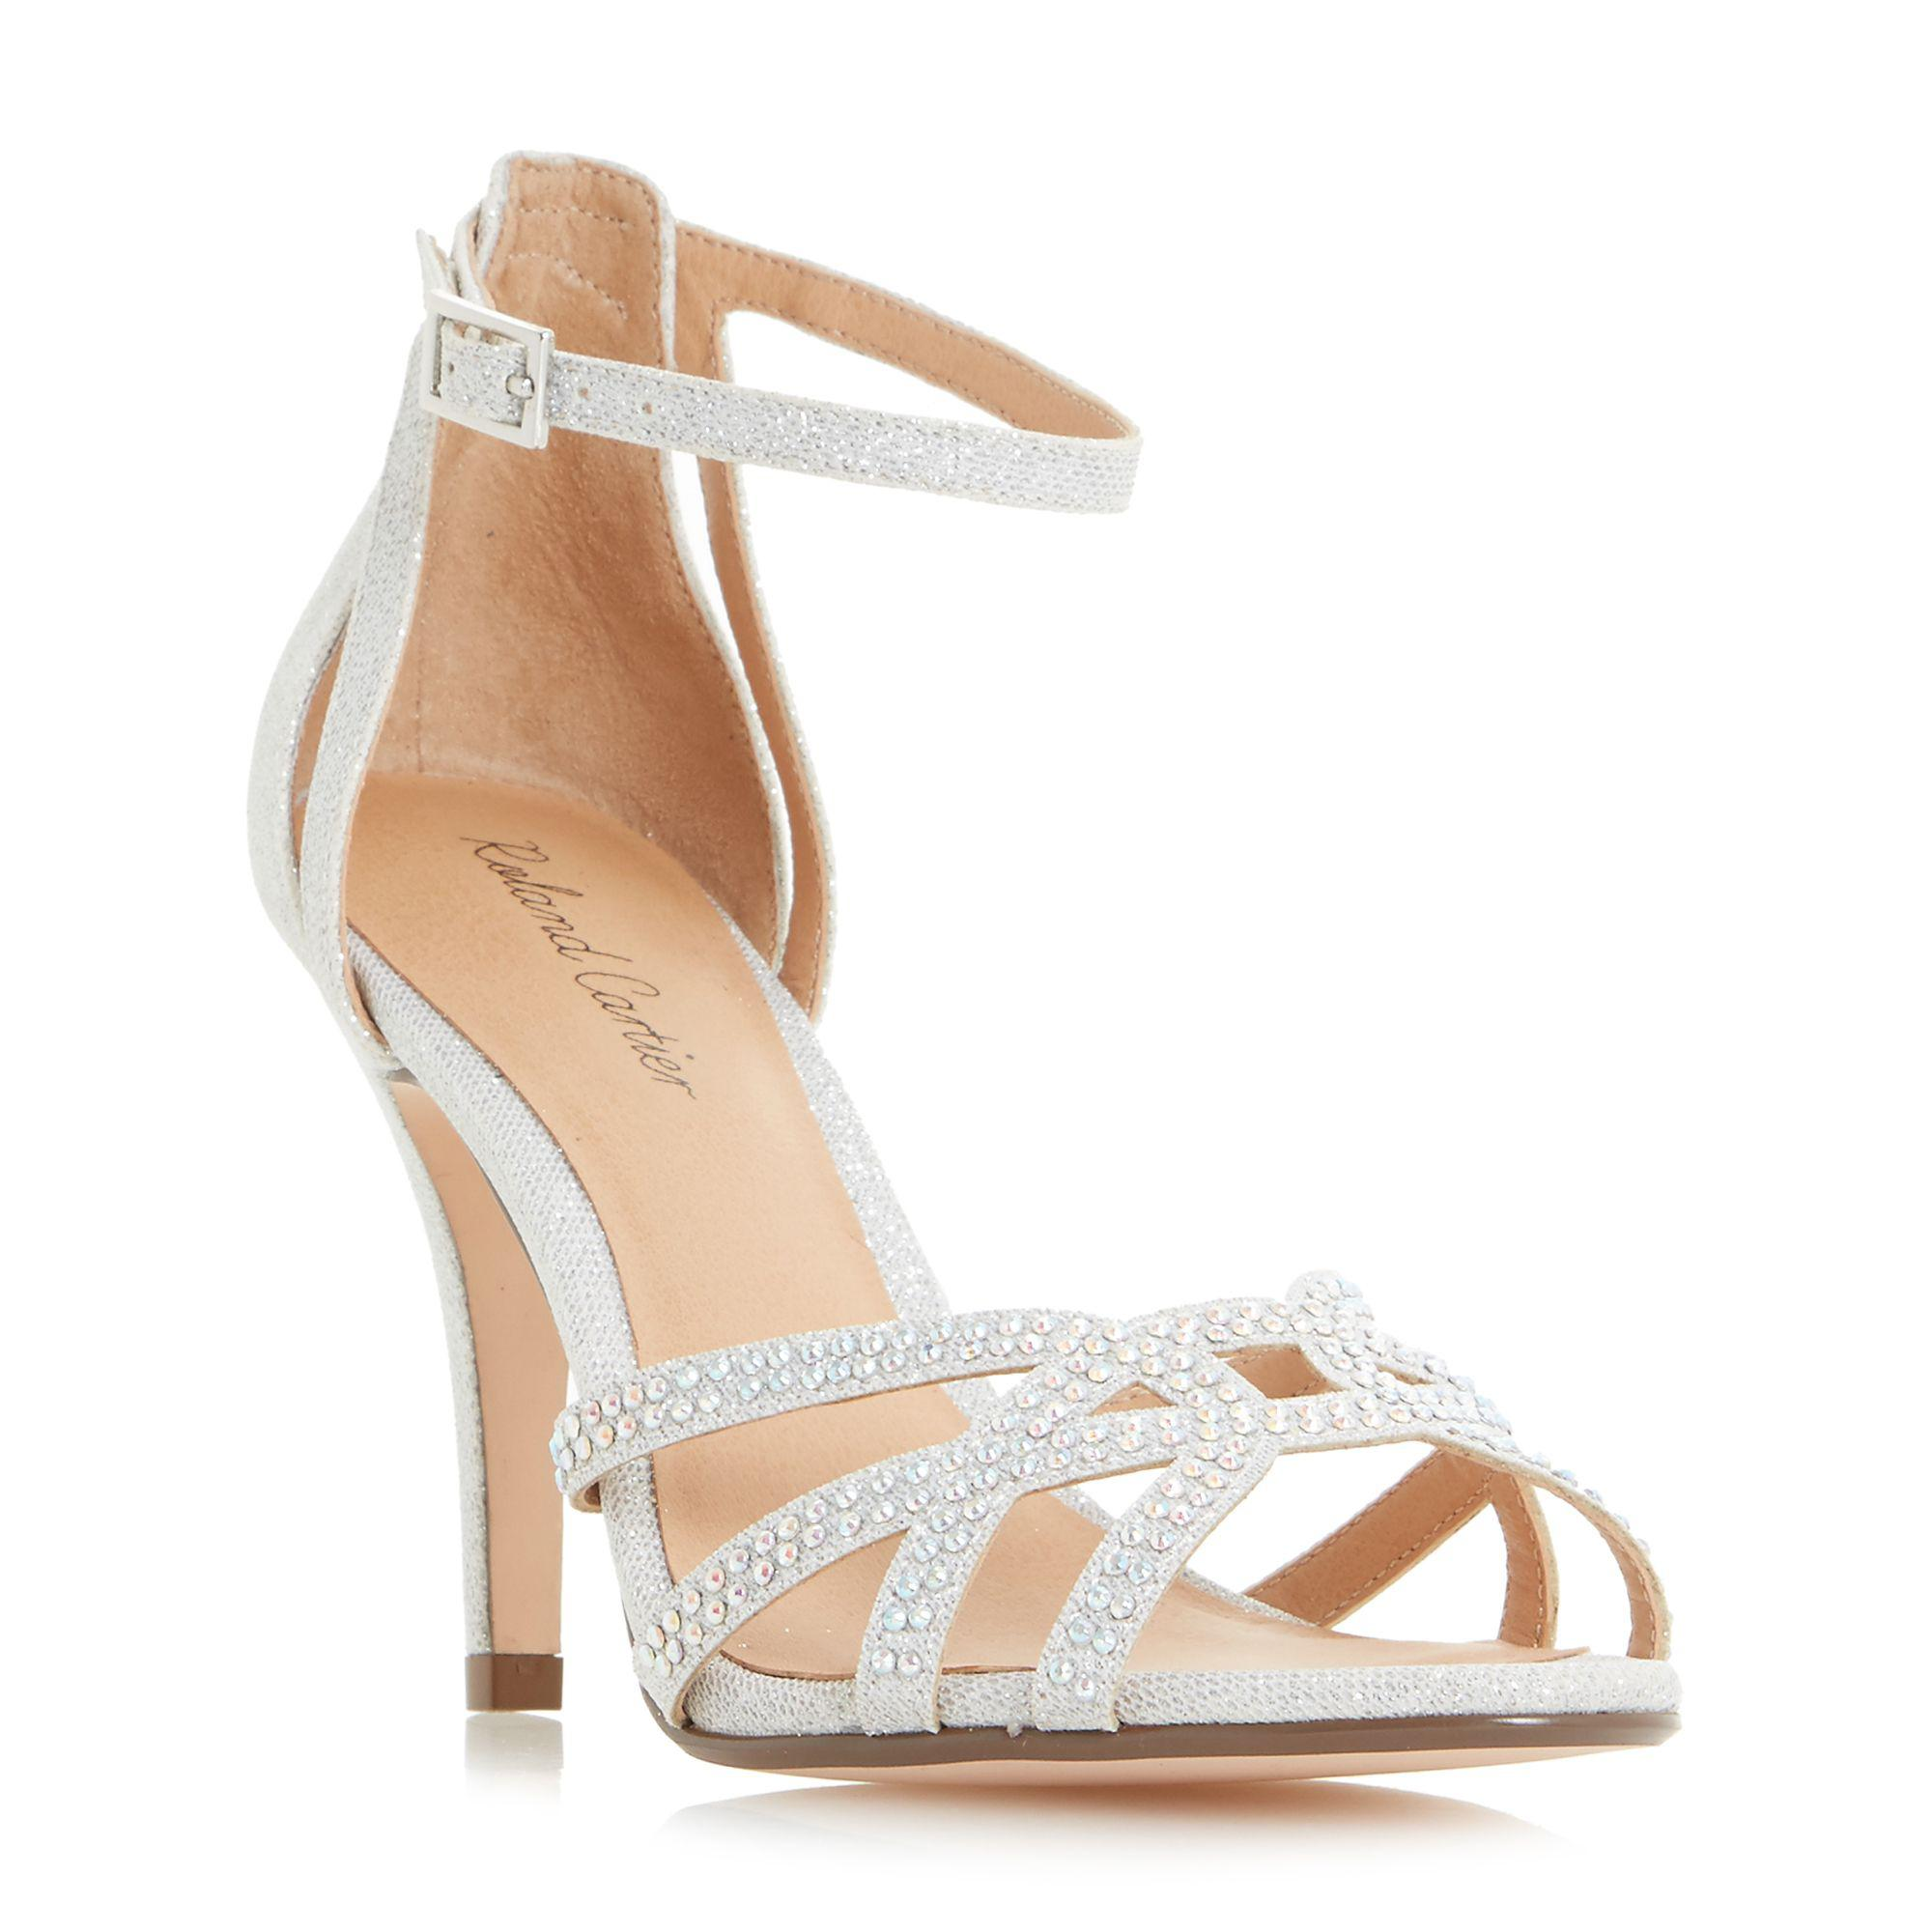 527a6176c13 Roland Cartier Silver  magma  Diamante Cut Out Heeled Sandals in ...